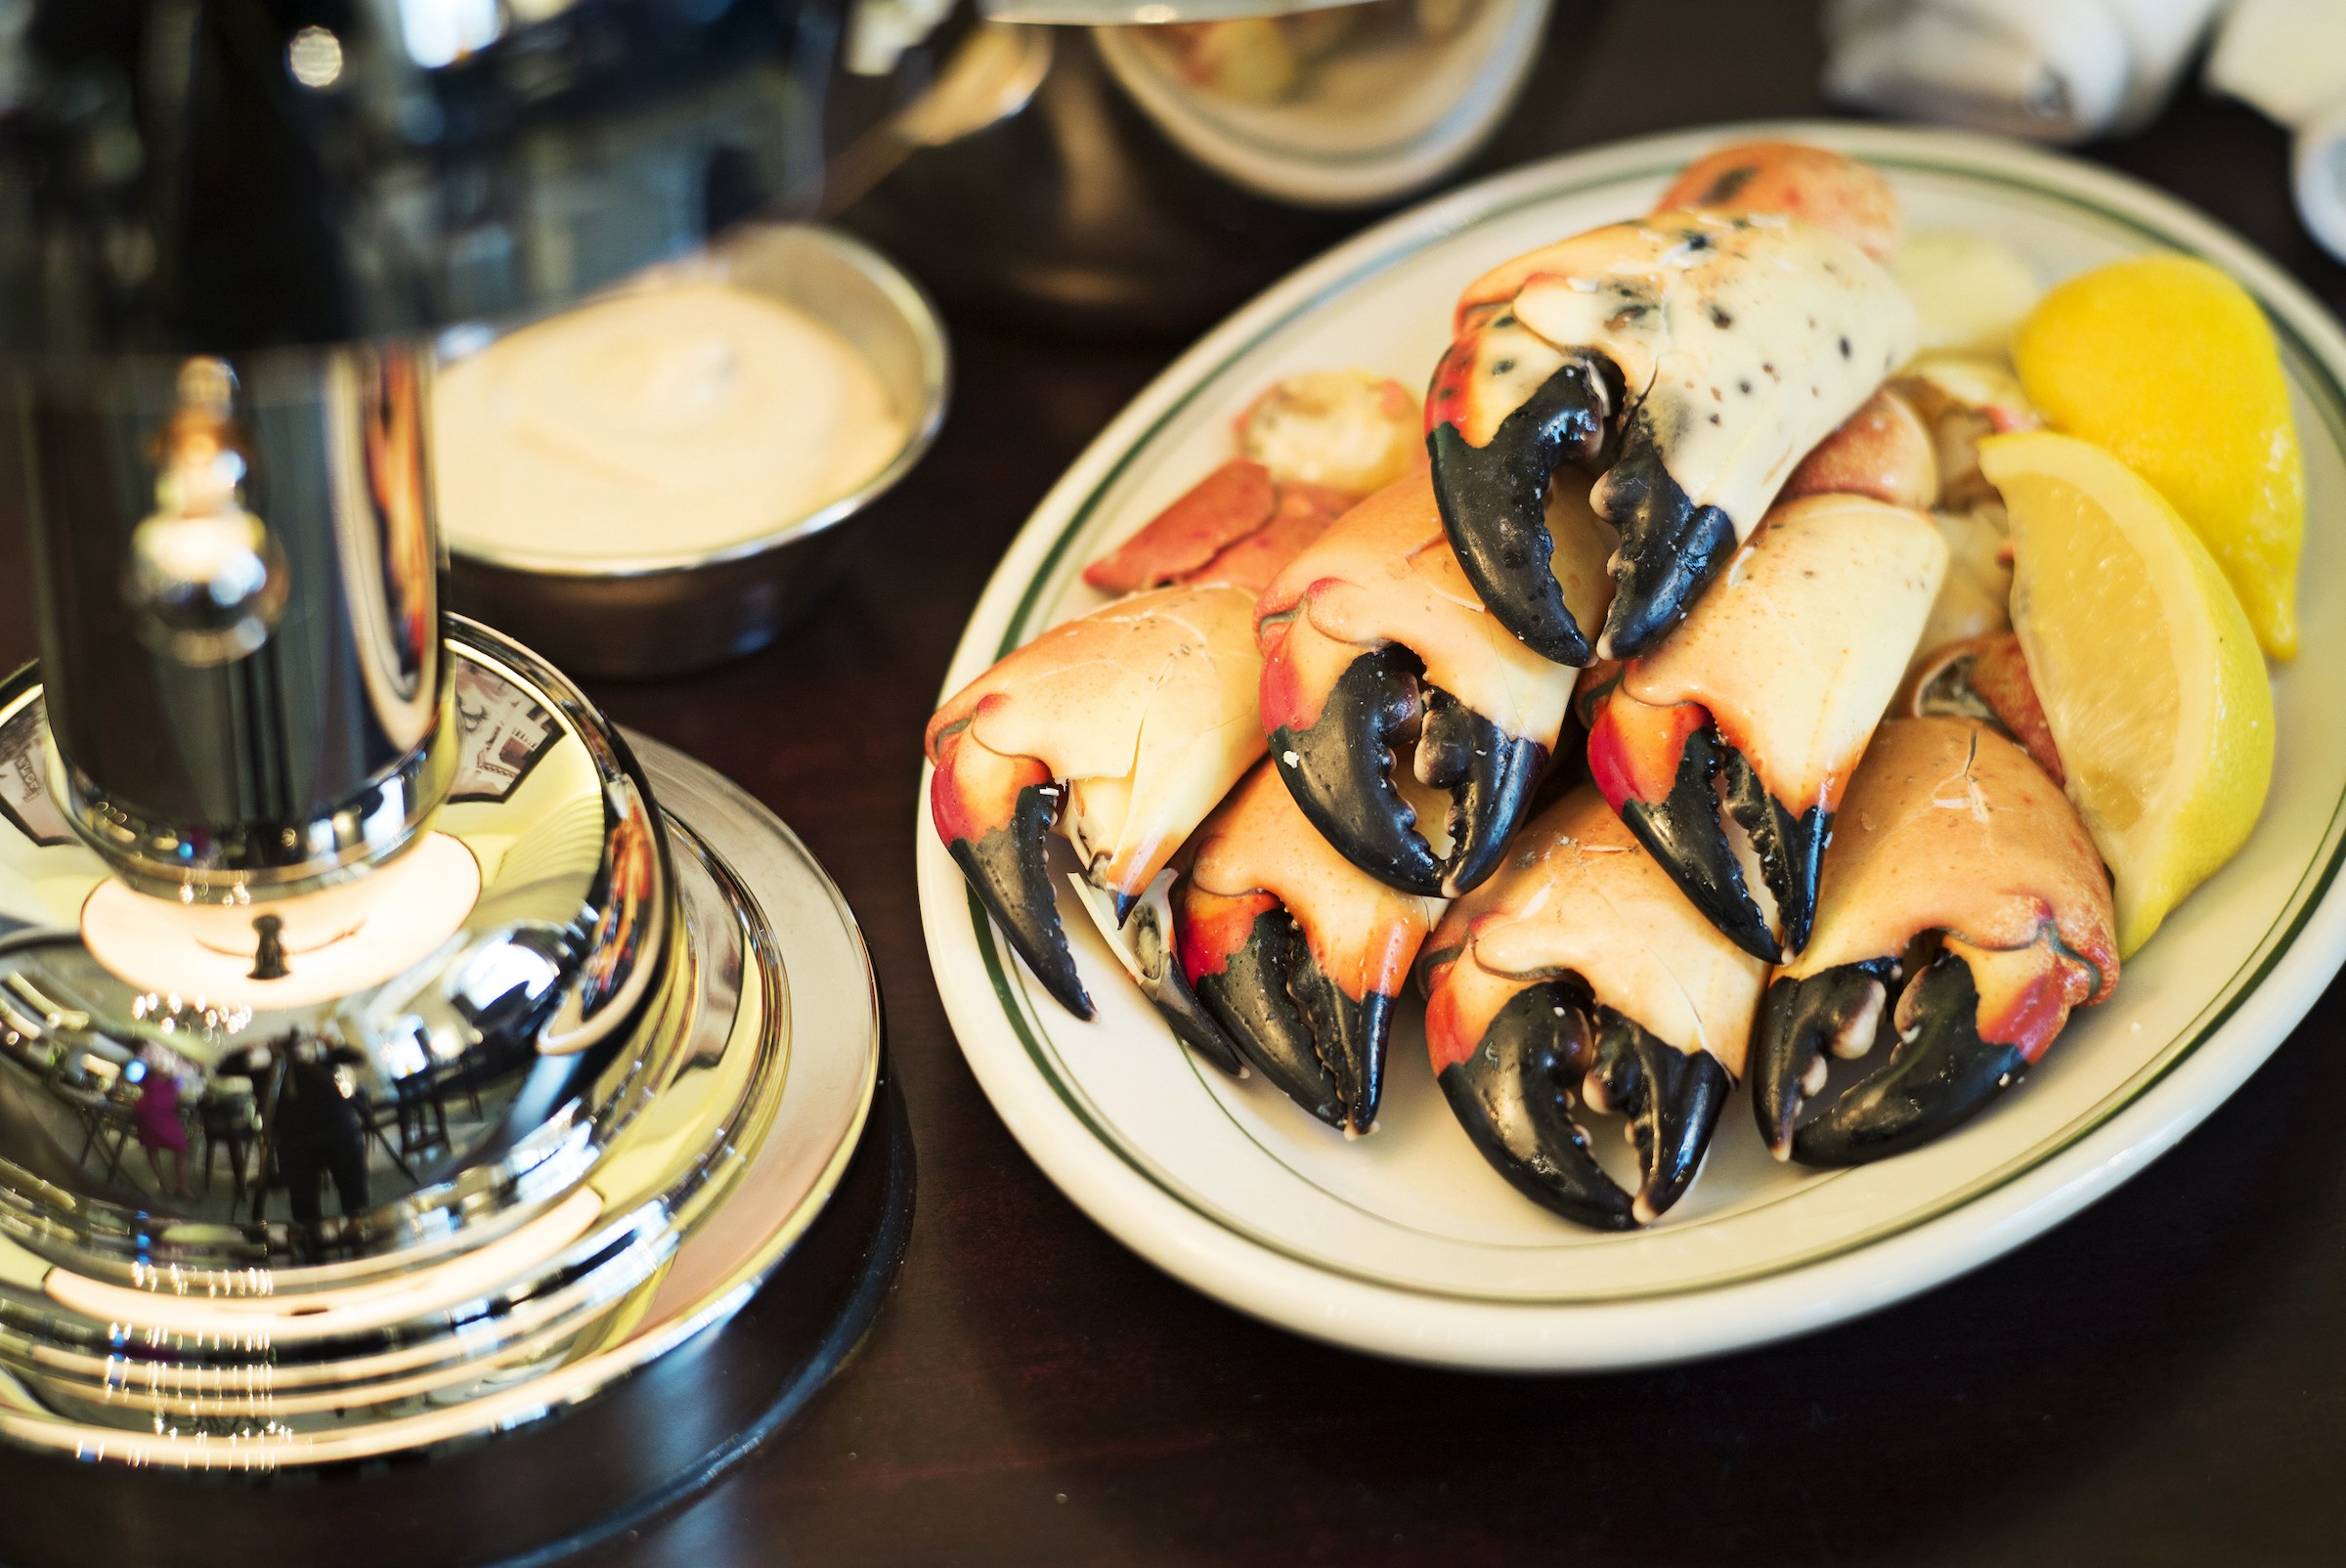 A plate of stone crab claws and two lemon wedges on a plate on a restaurant table.